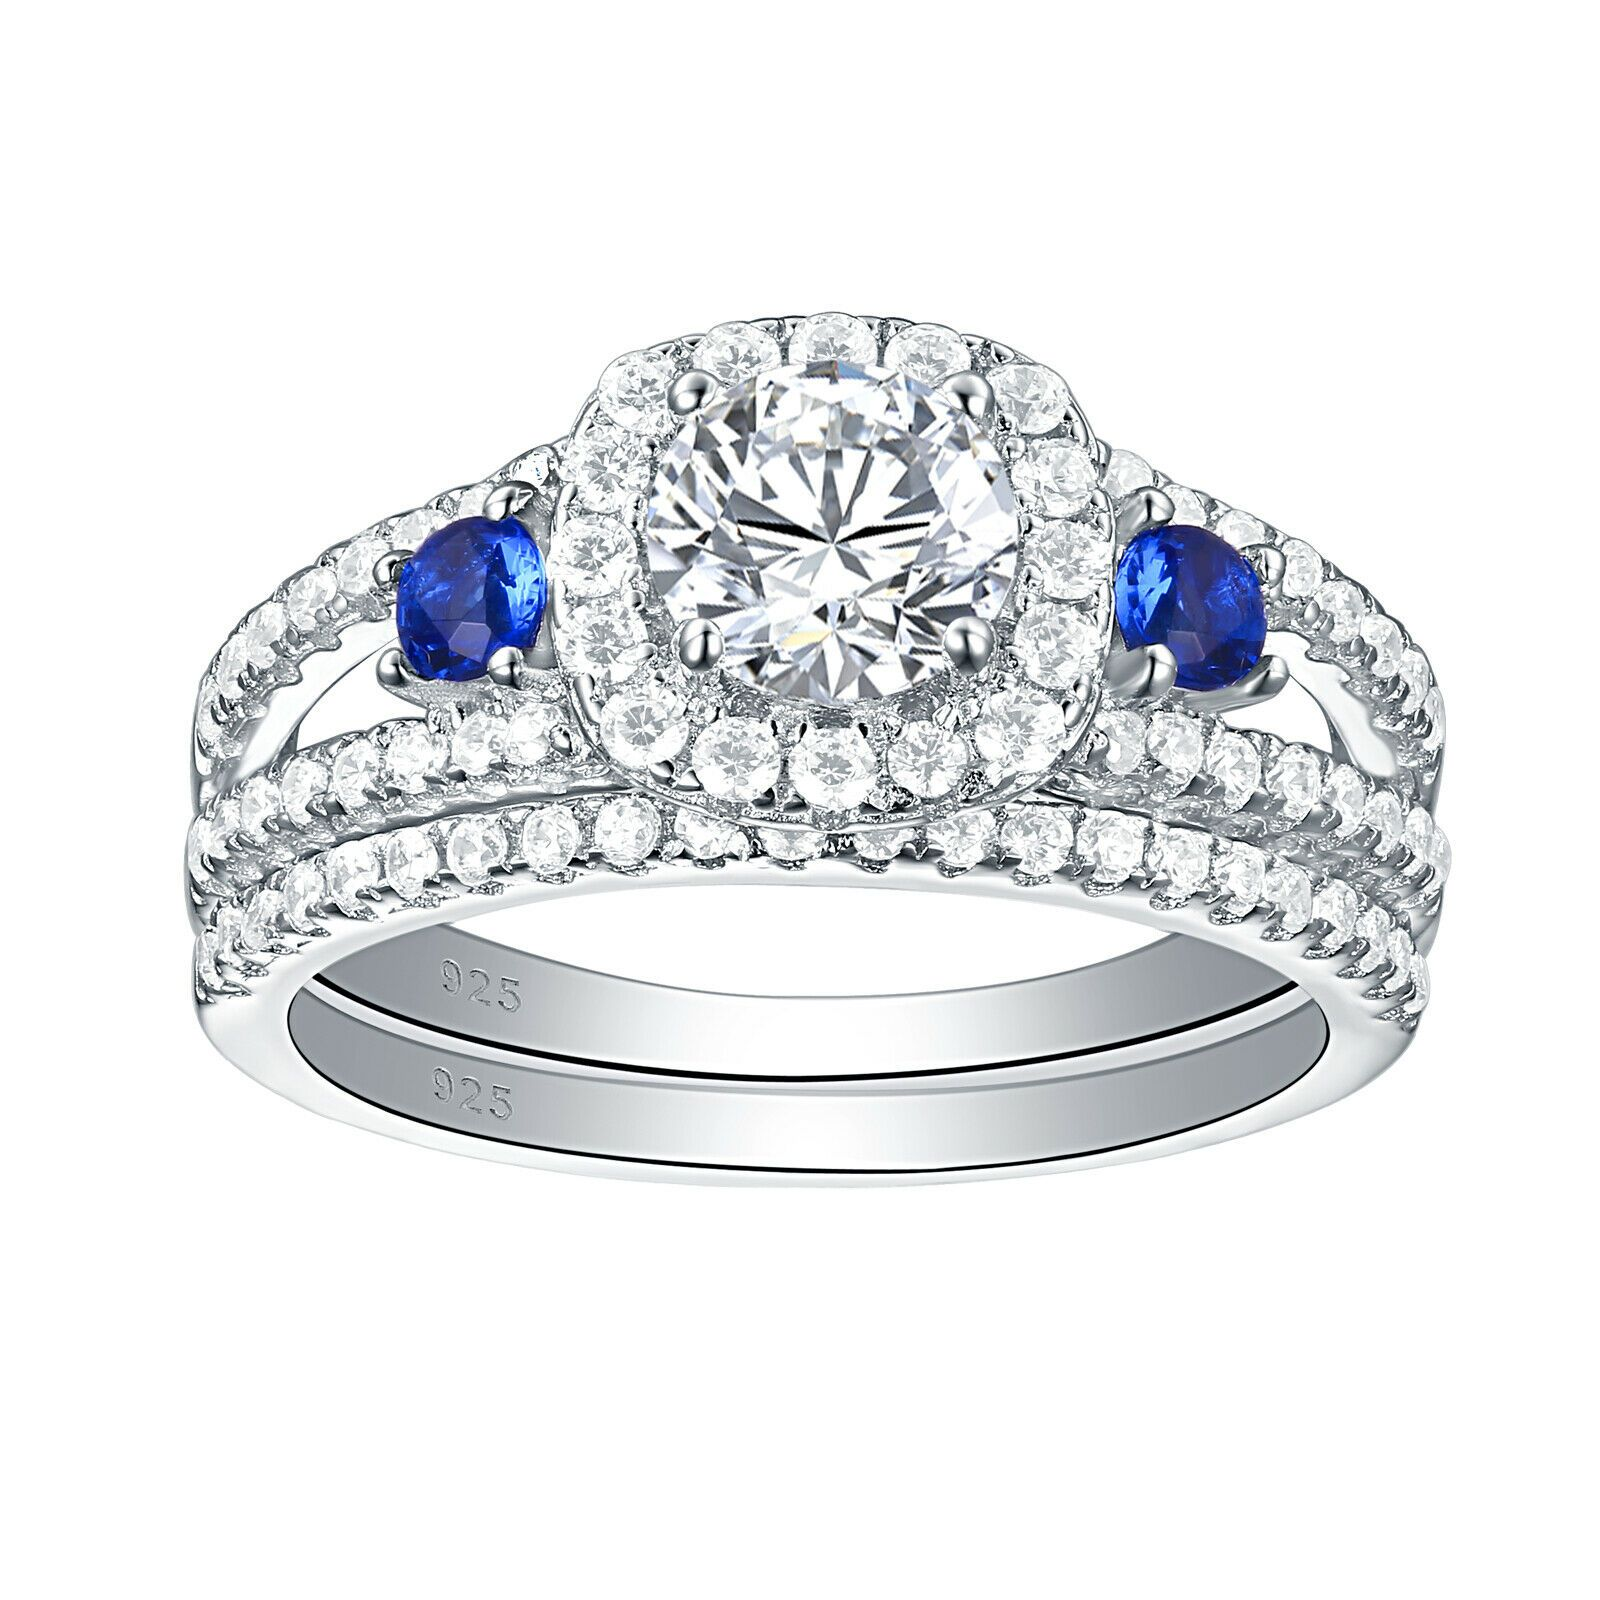 Genuine 925 Sterling Silver Sparkling 1.5 Ct AAA CZ Wedding Engagement Ring Gift